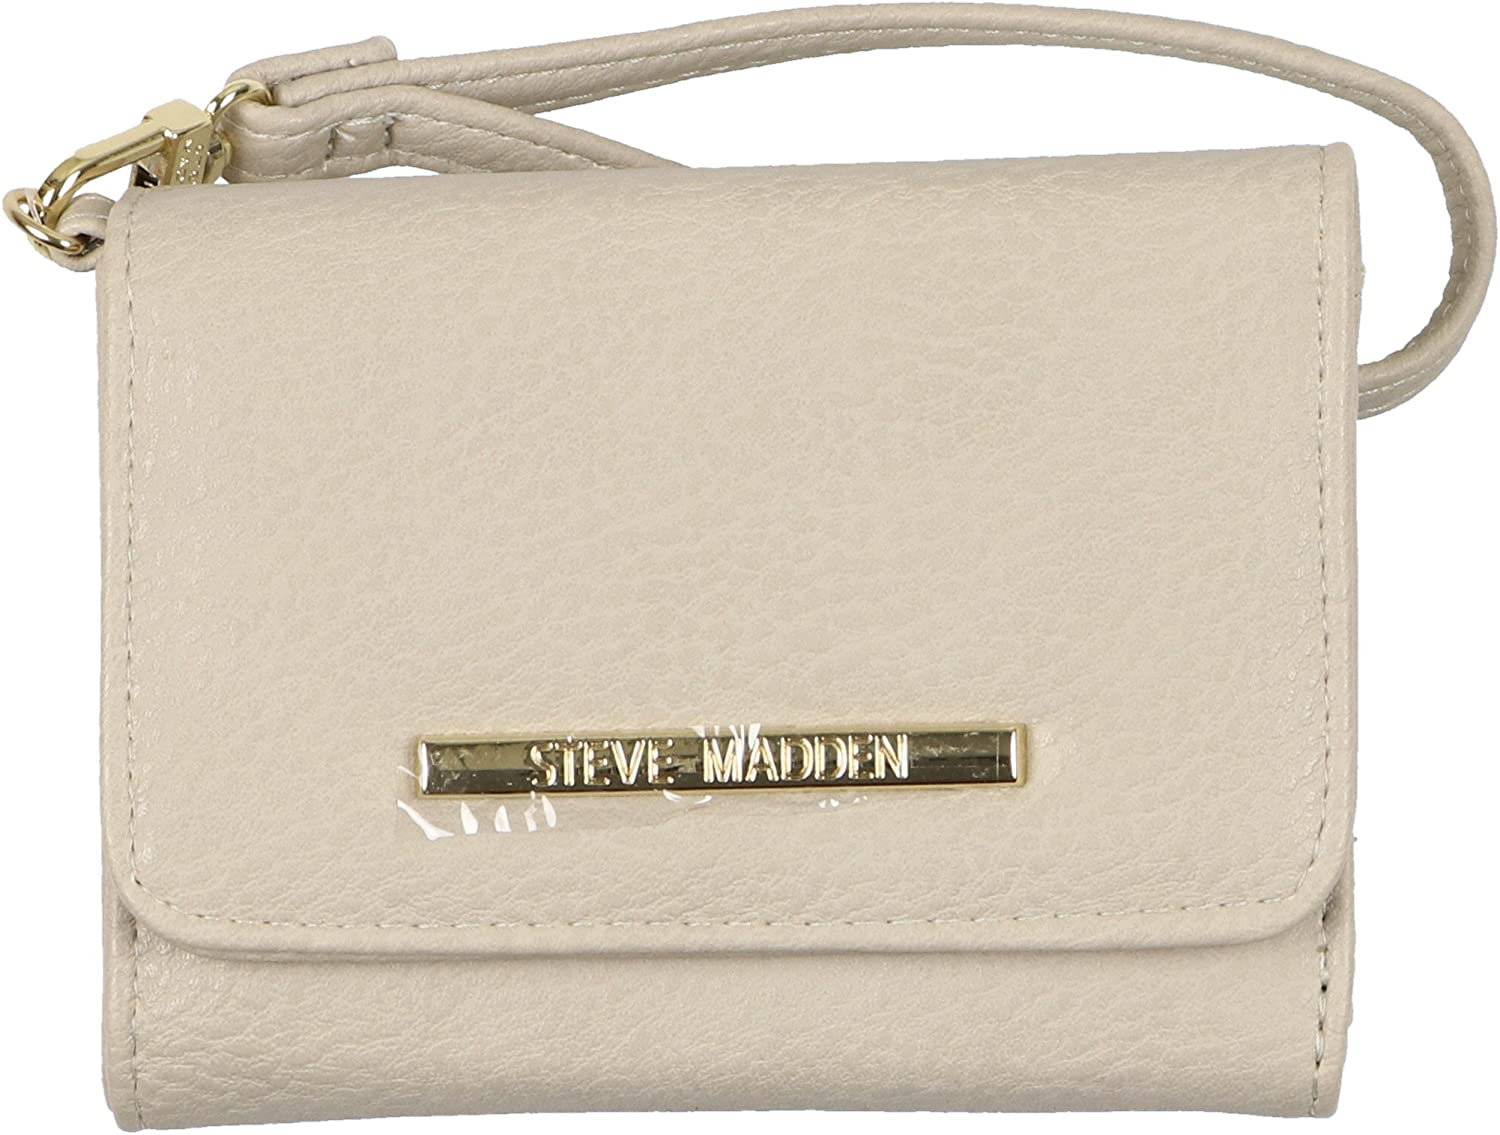 Steve Madden Women S French Wristlet Tri Fold Wallet Bisque Amazon Co Uk Shoes Bags